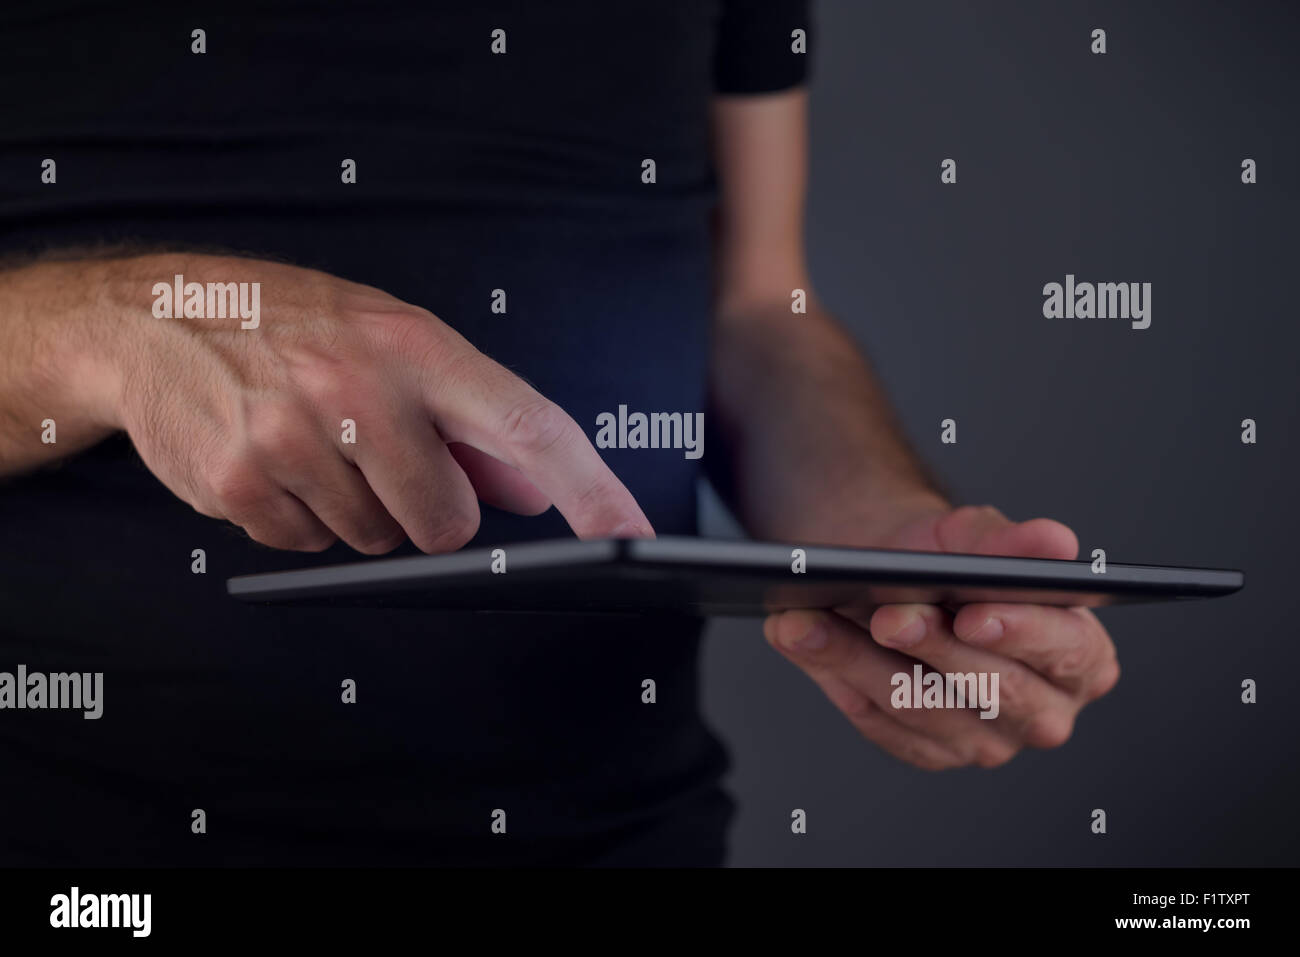 Digital tablet computer usage, man tapping touch screen of movable electronics technology gadget, close up of hands, - Stock Image